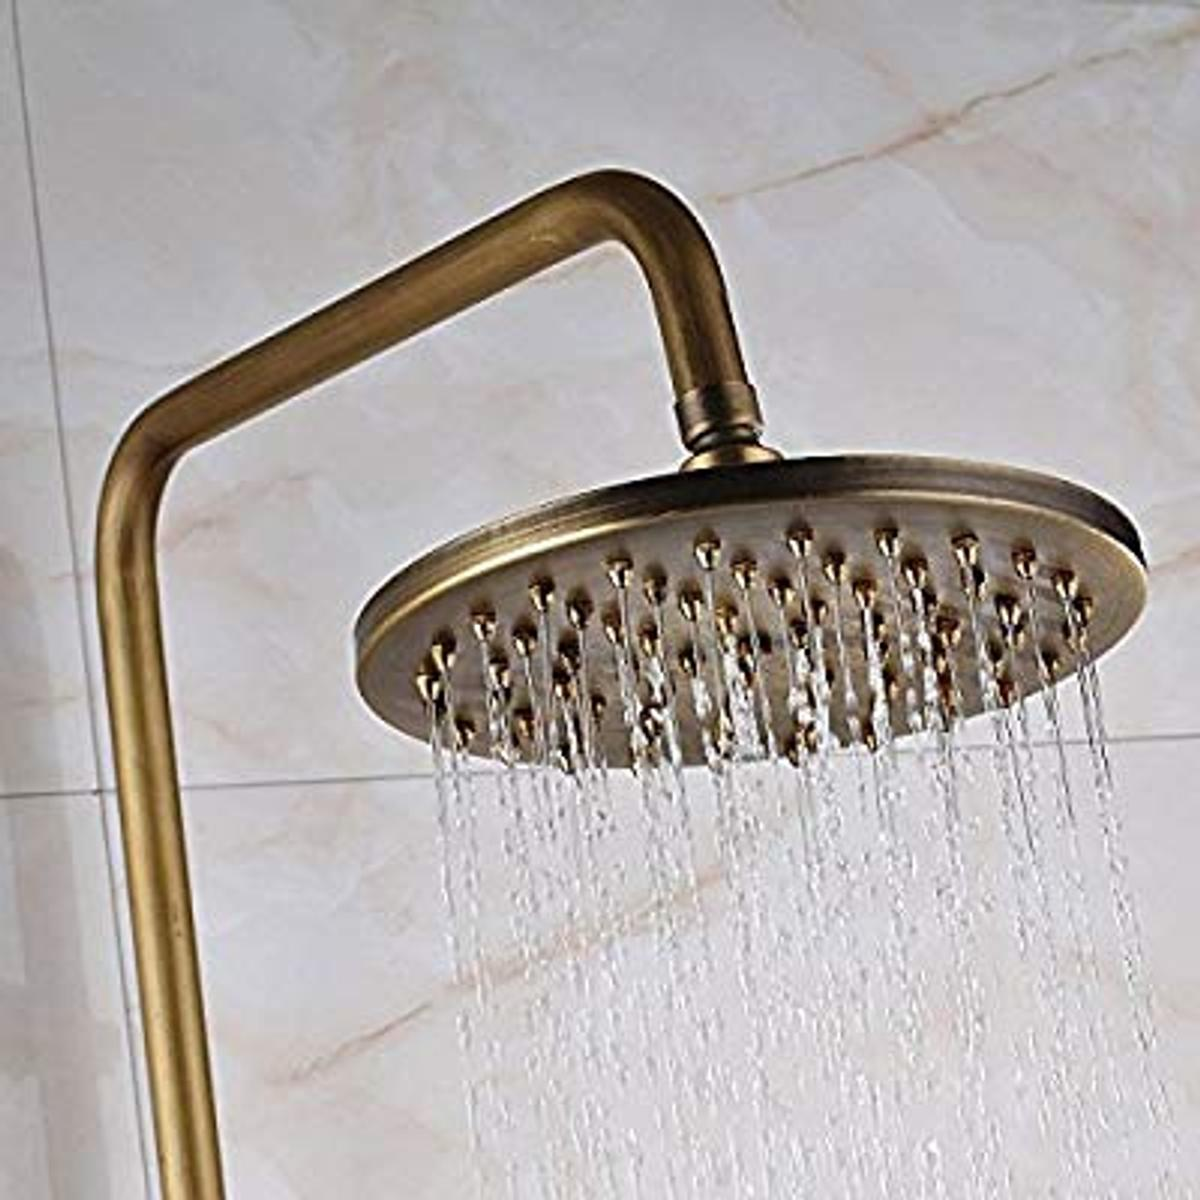 Bnib Wall Mount Rainfall Shower Taps In Whitchurch For